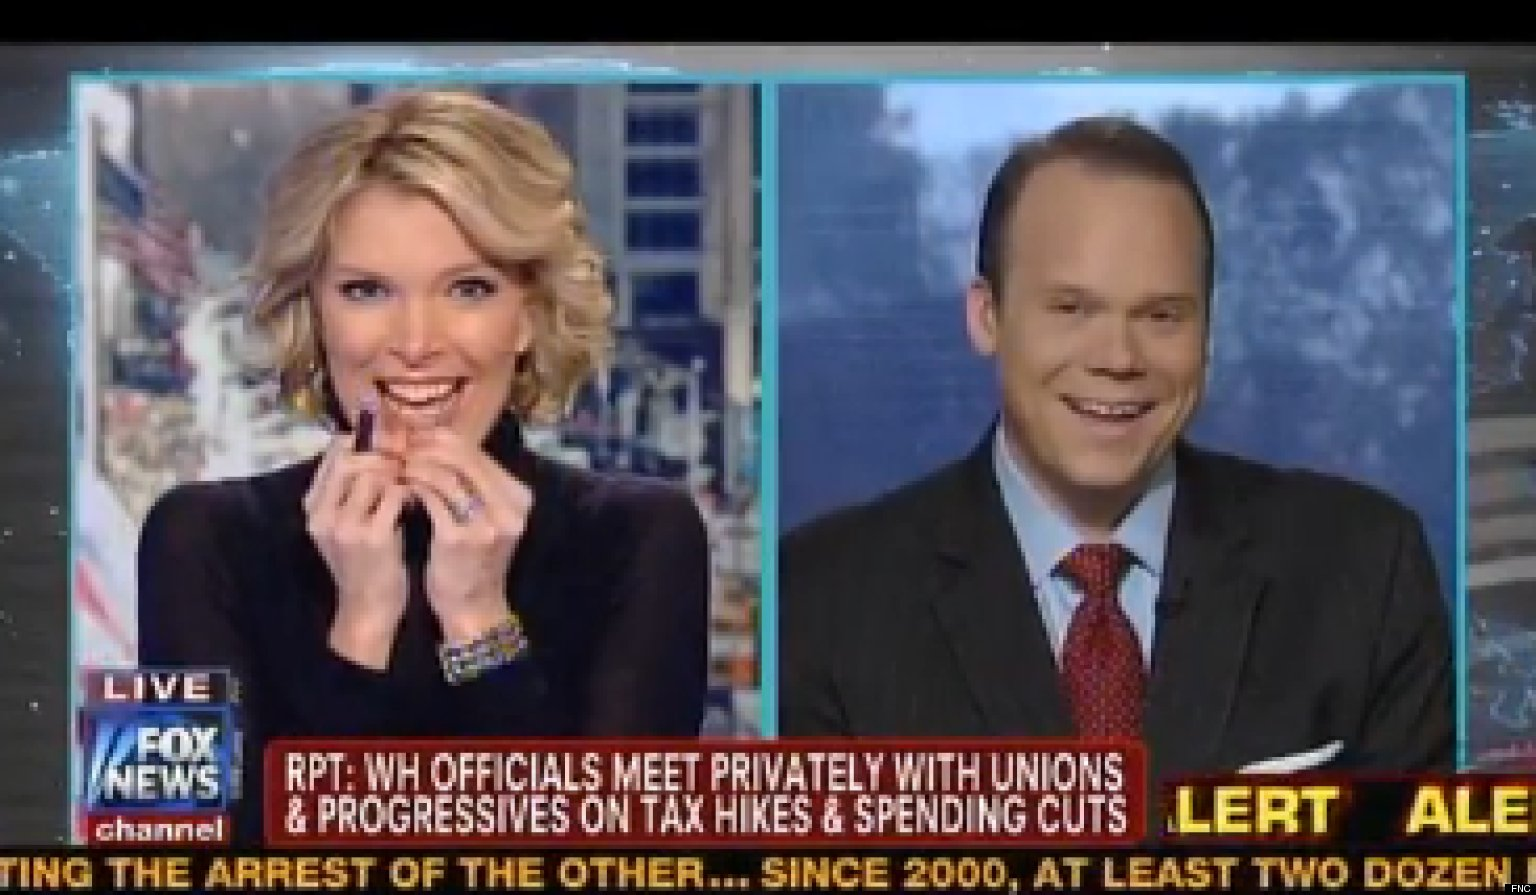 Megyn Kelly Incredibly Amused By New Fox News Graphic (VIDEO): www.huffingtonpost.com/2012/11/29/megyn-kelly-amused-fox-news...